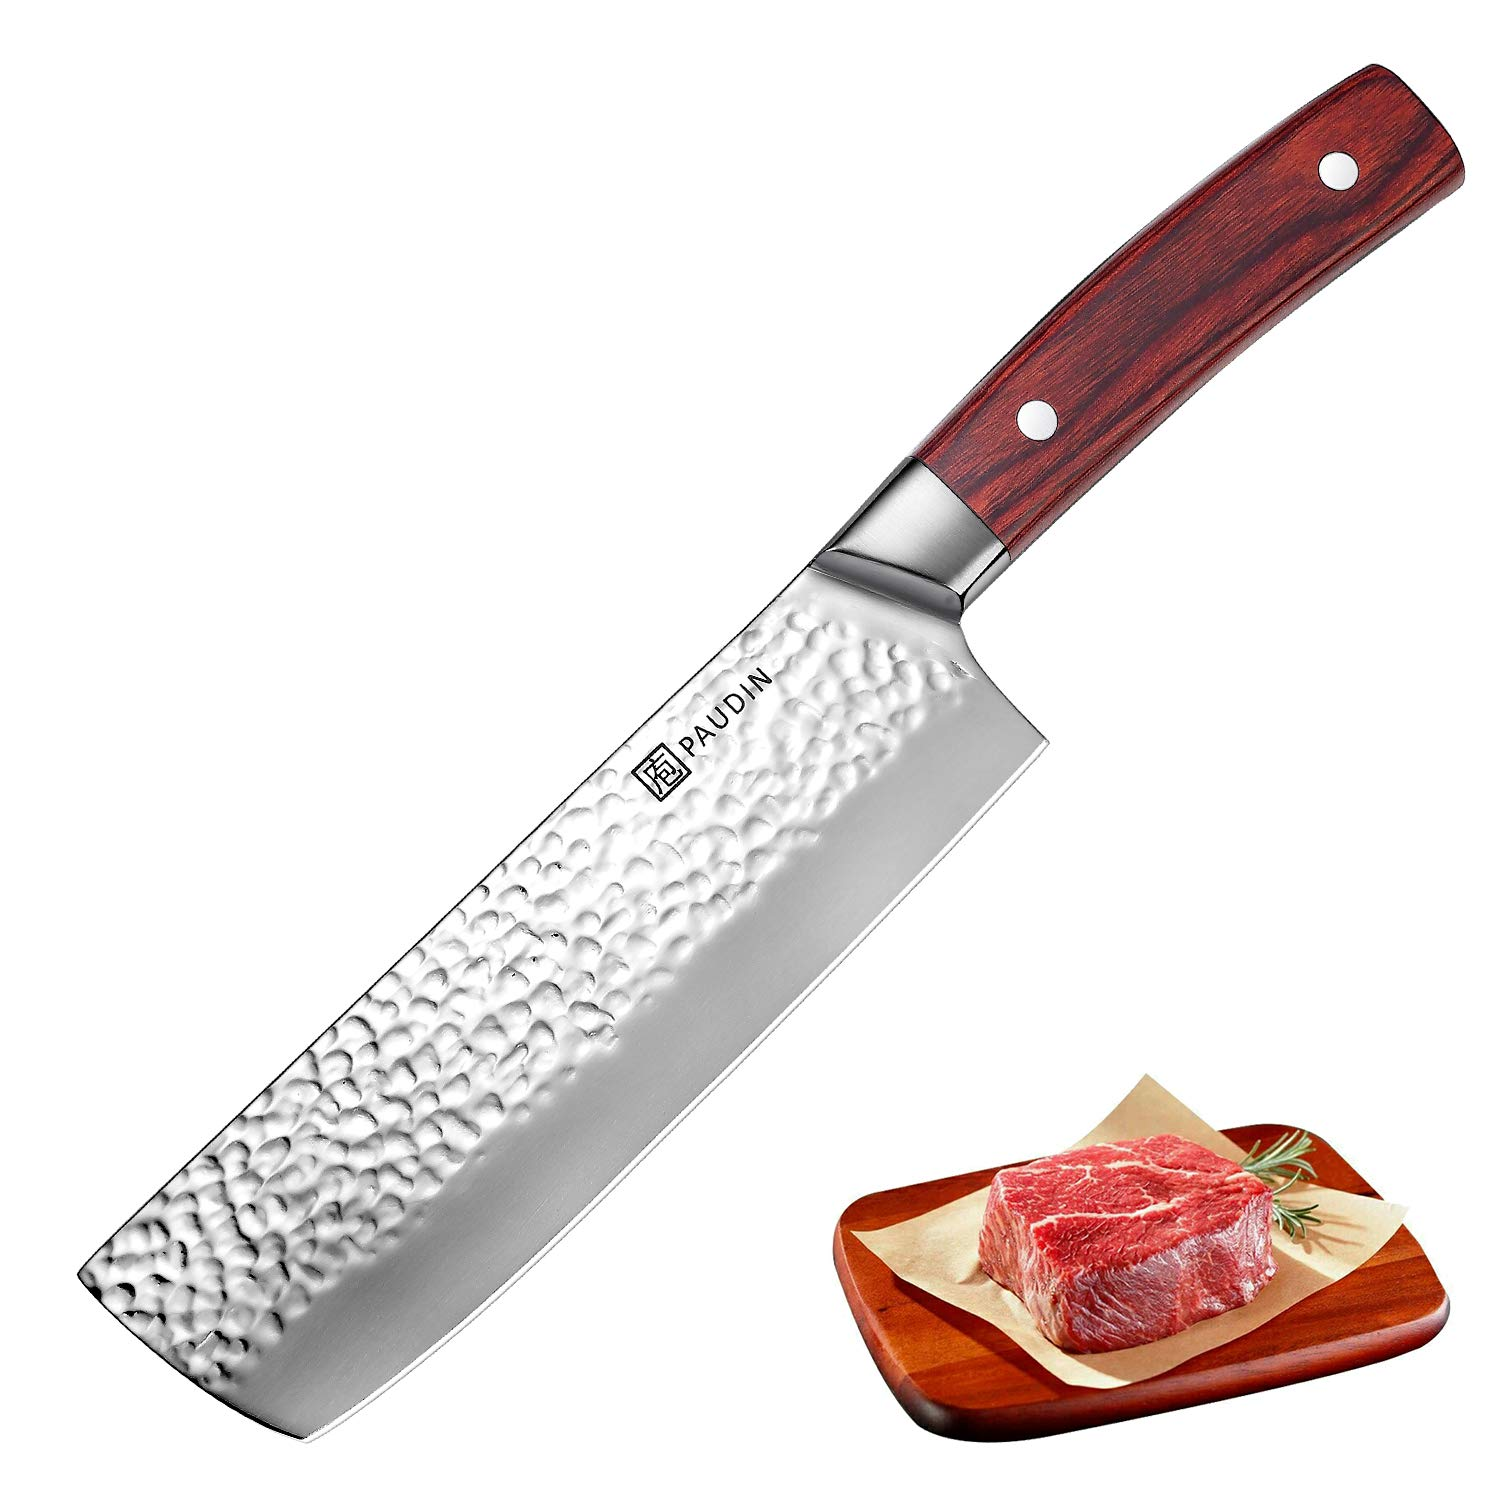 Cleaver Knife 7 Inch, PAUDIN Pro Chinese Vegetable Cleaver Meat Nakiri Knife German High Carbon Stainless Steel 7Cr17Mov Hammered Pattern, Sharp Knife with Ergonomic Pakka Wood Handle by PAUDIN